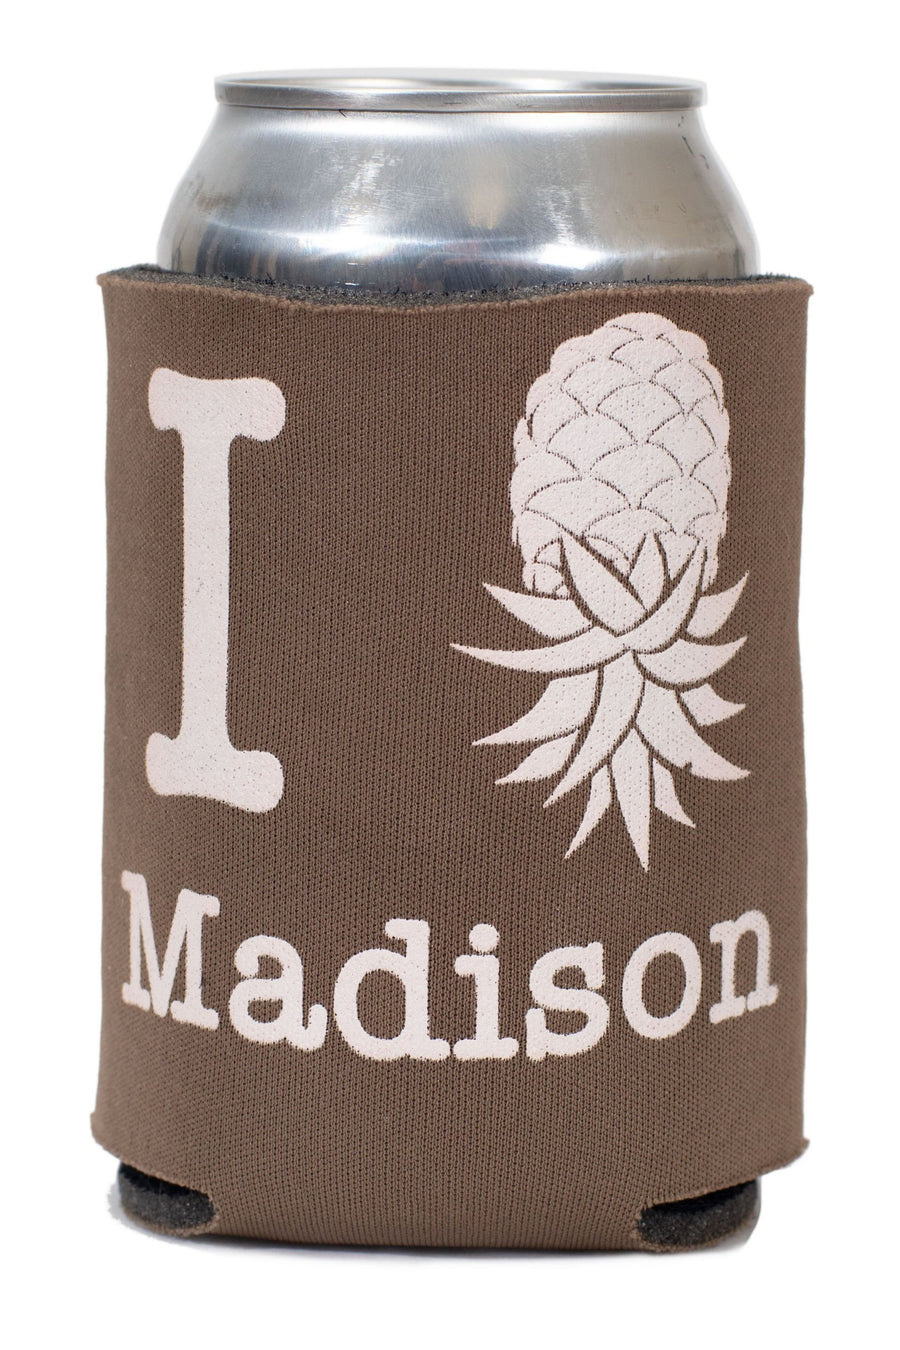 I Pineapple Madison Koozie 1